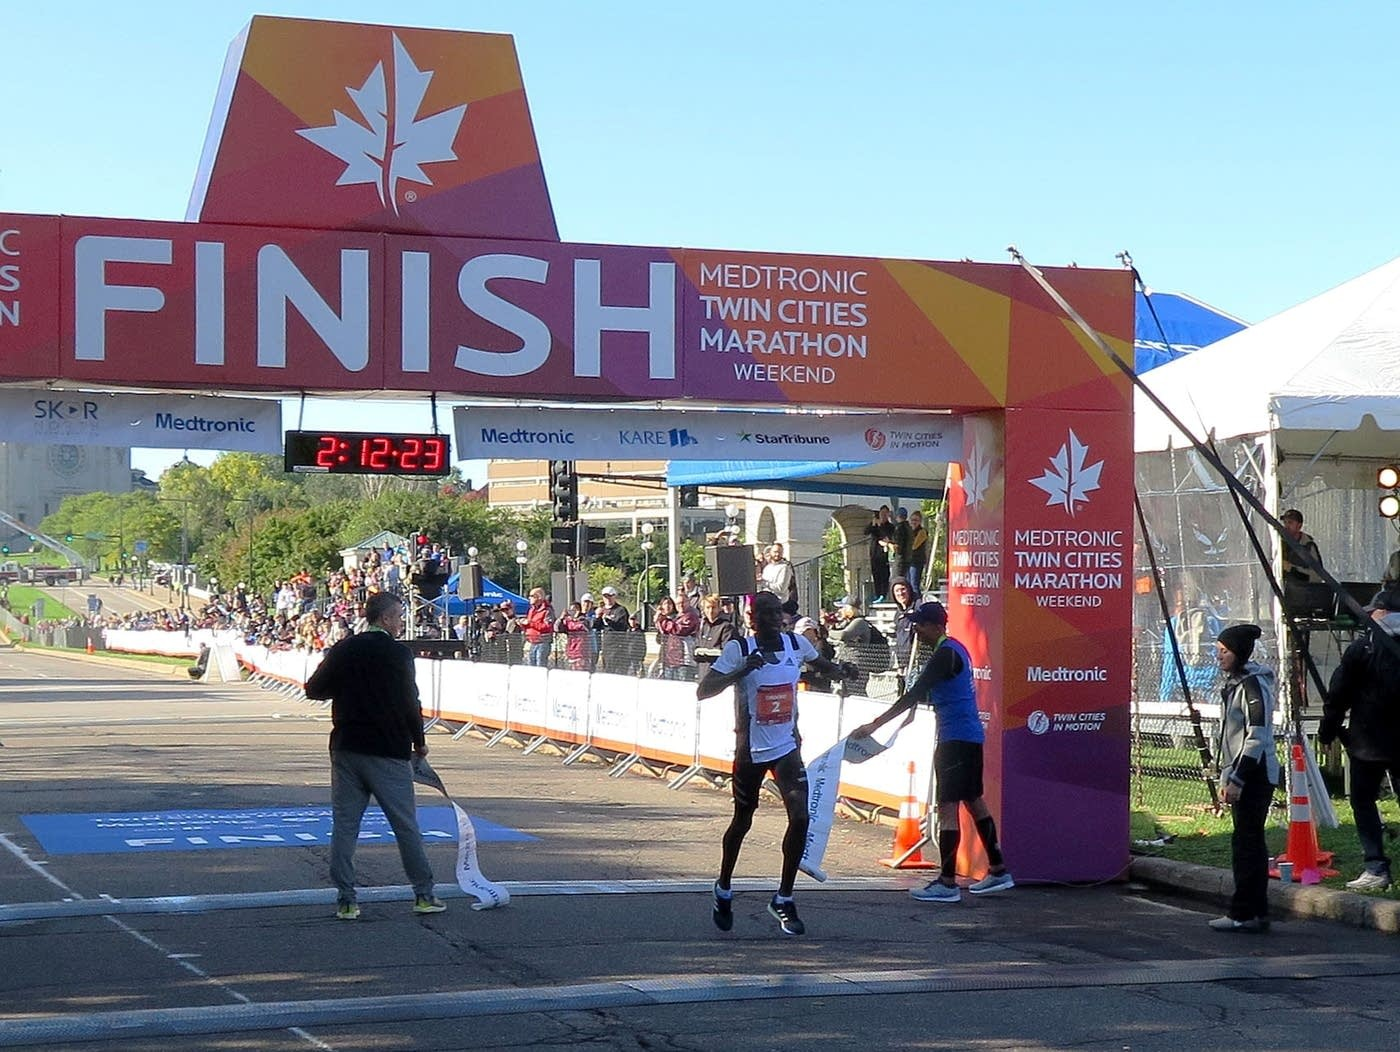 Dominic Ondoro of Kenya won the Medtronic Twin Cities Marathon on Sunday for a record-breaking fourth time